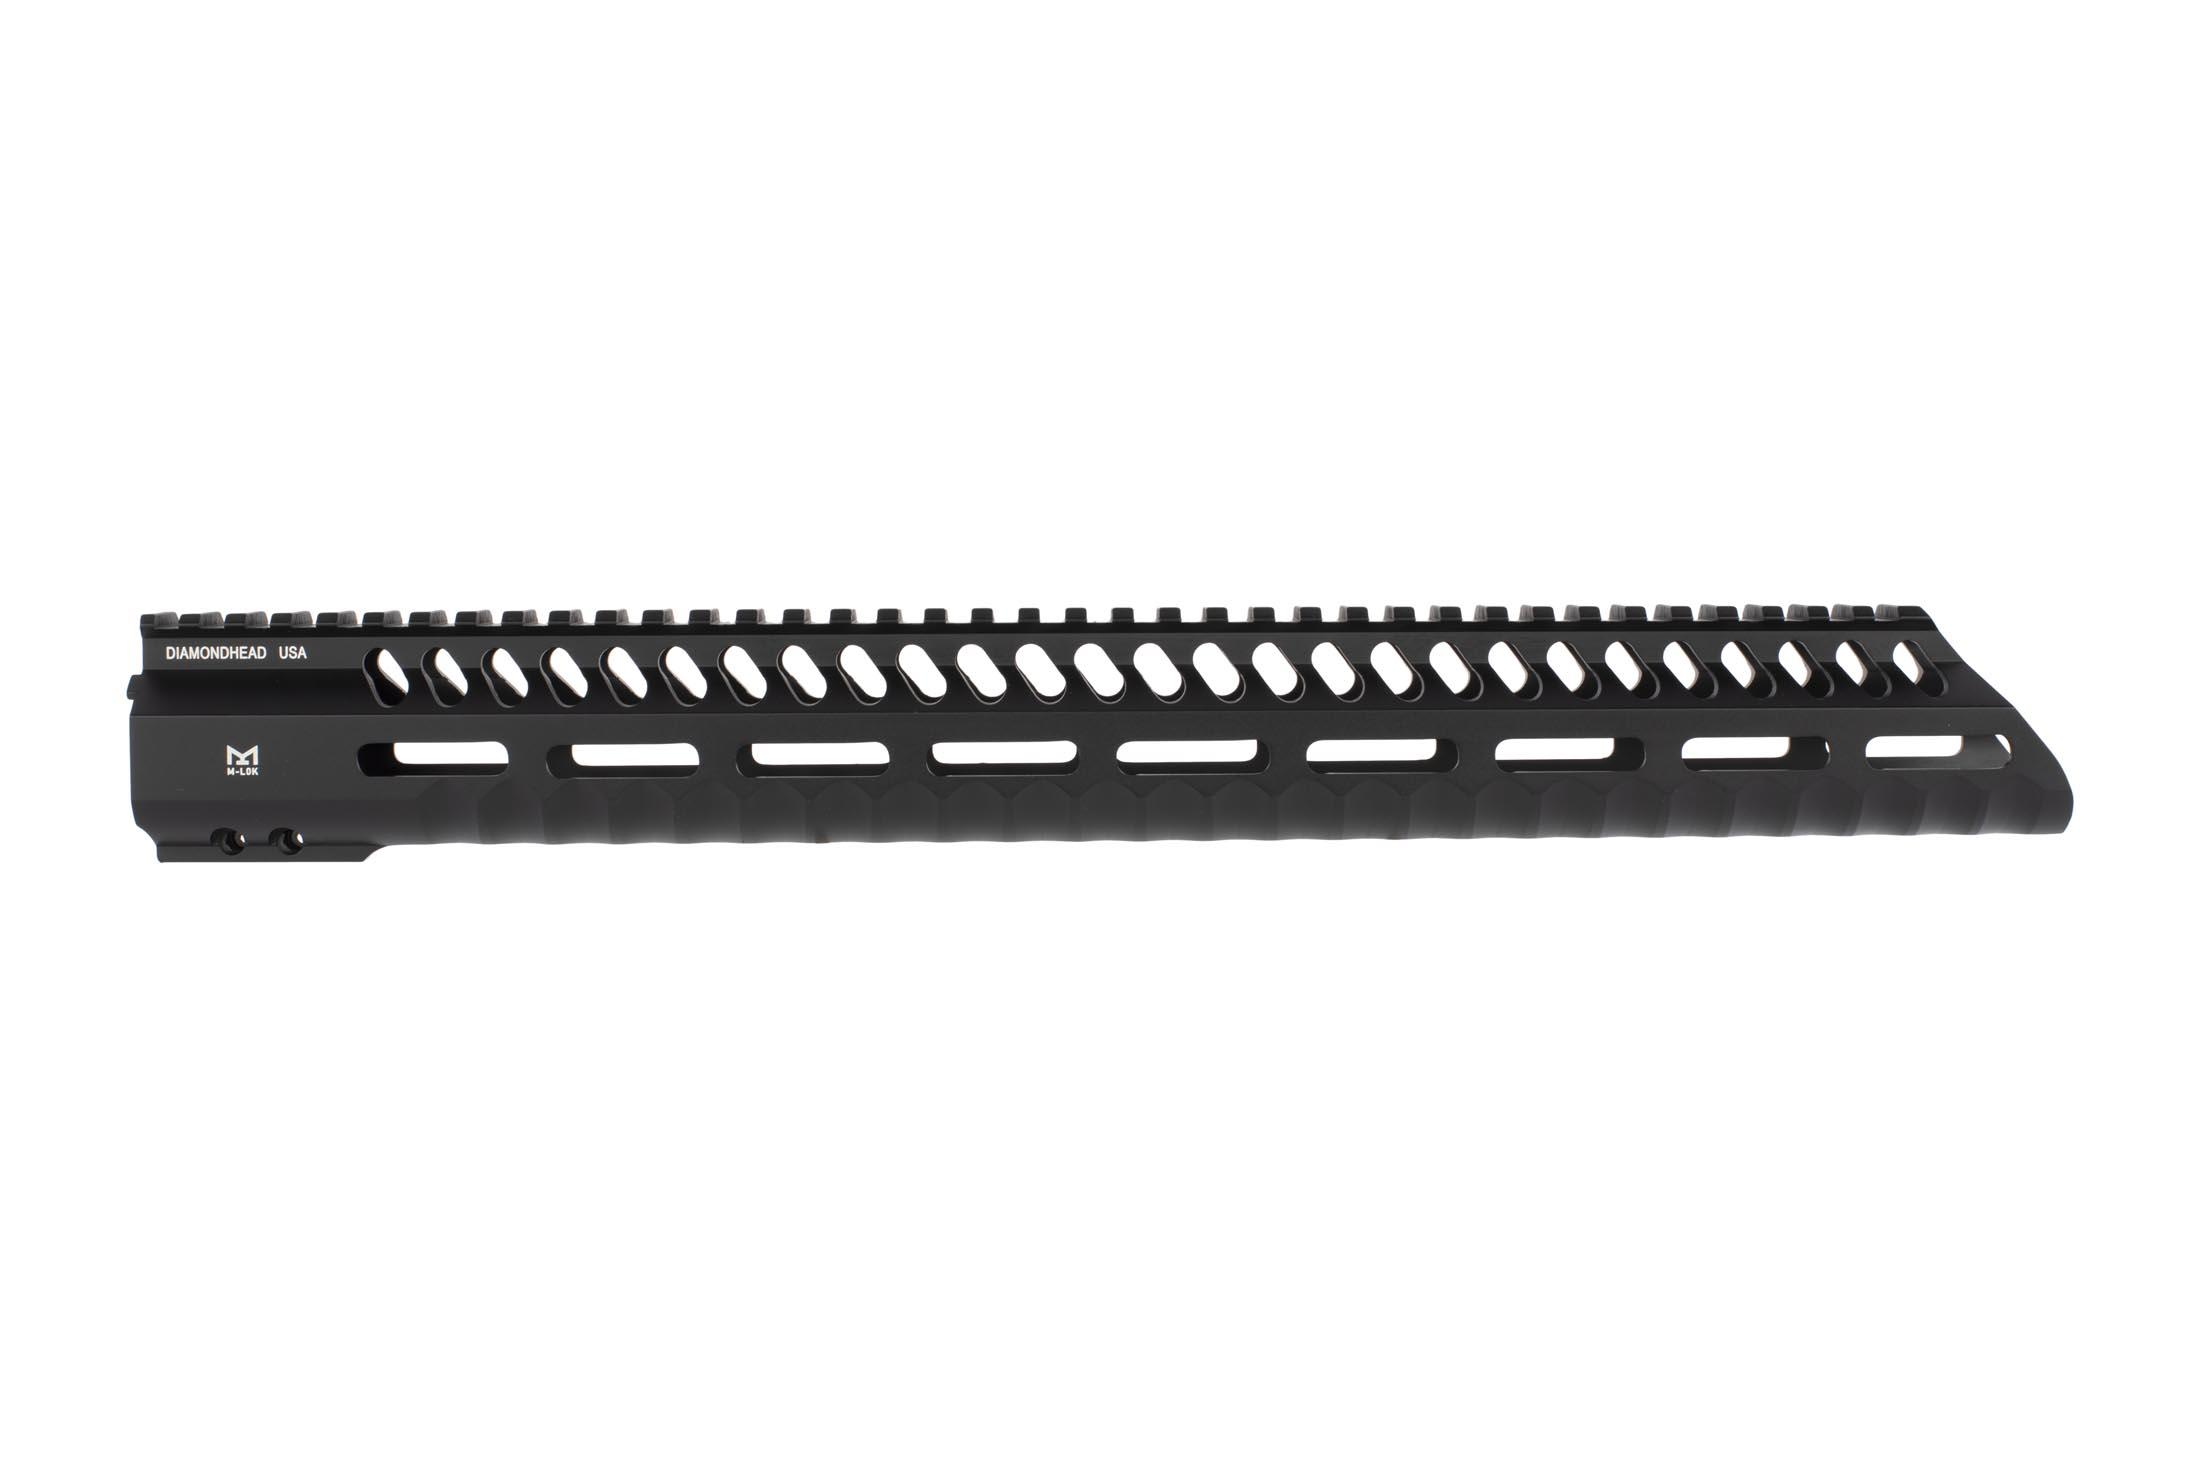 Diamondhead 15in 3rd generation VRS-T free float handguard features ergonomic finger grooves and M-LOK accessory slots